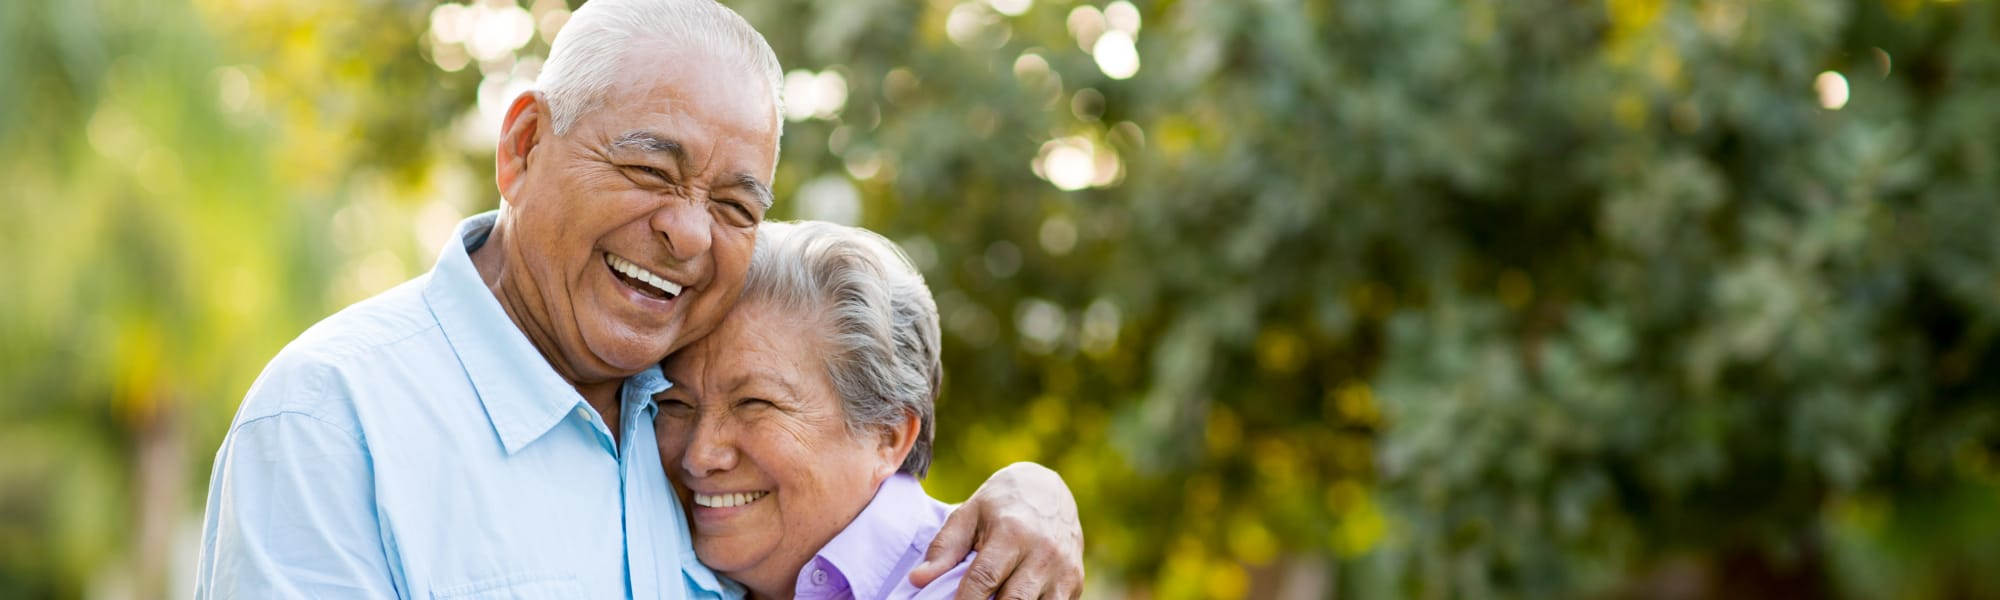 FAQS for Careage Home Health in Bellevue, Washington.